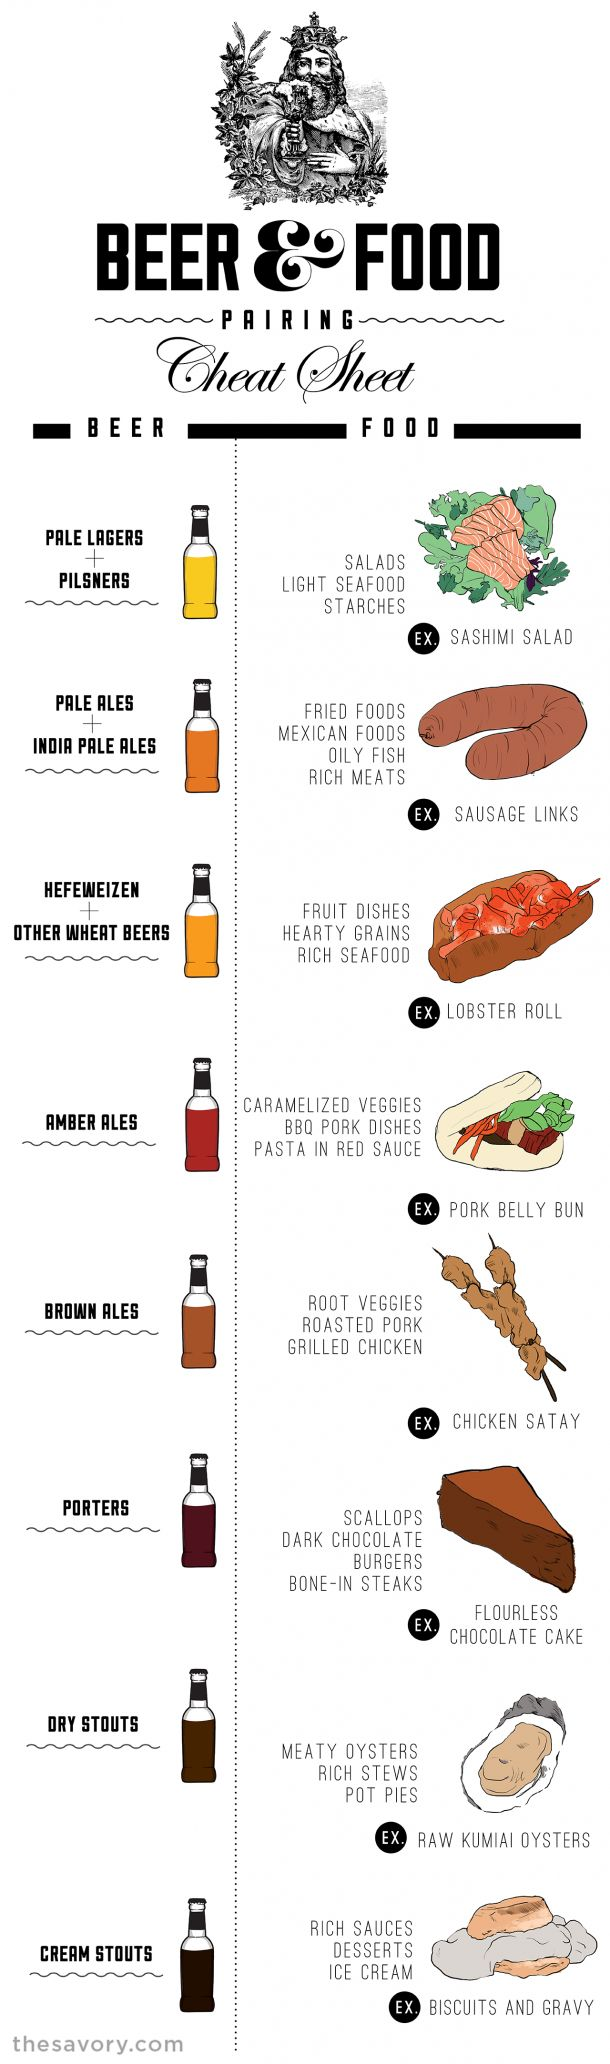 How to Pair Beer with Food...because why not take advantage of a cheat sheet?  | The Savory